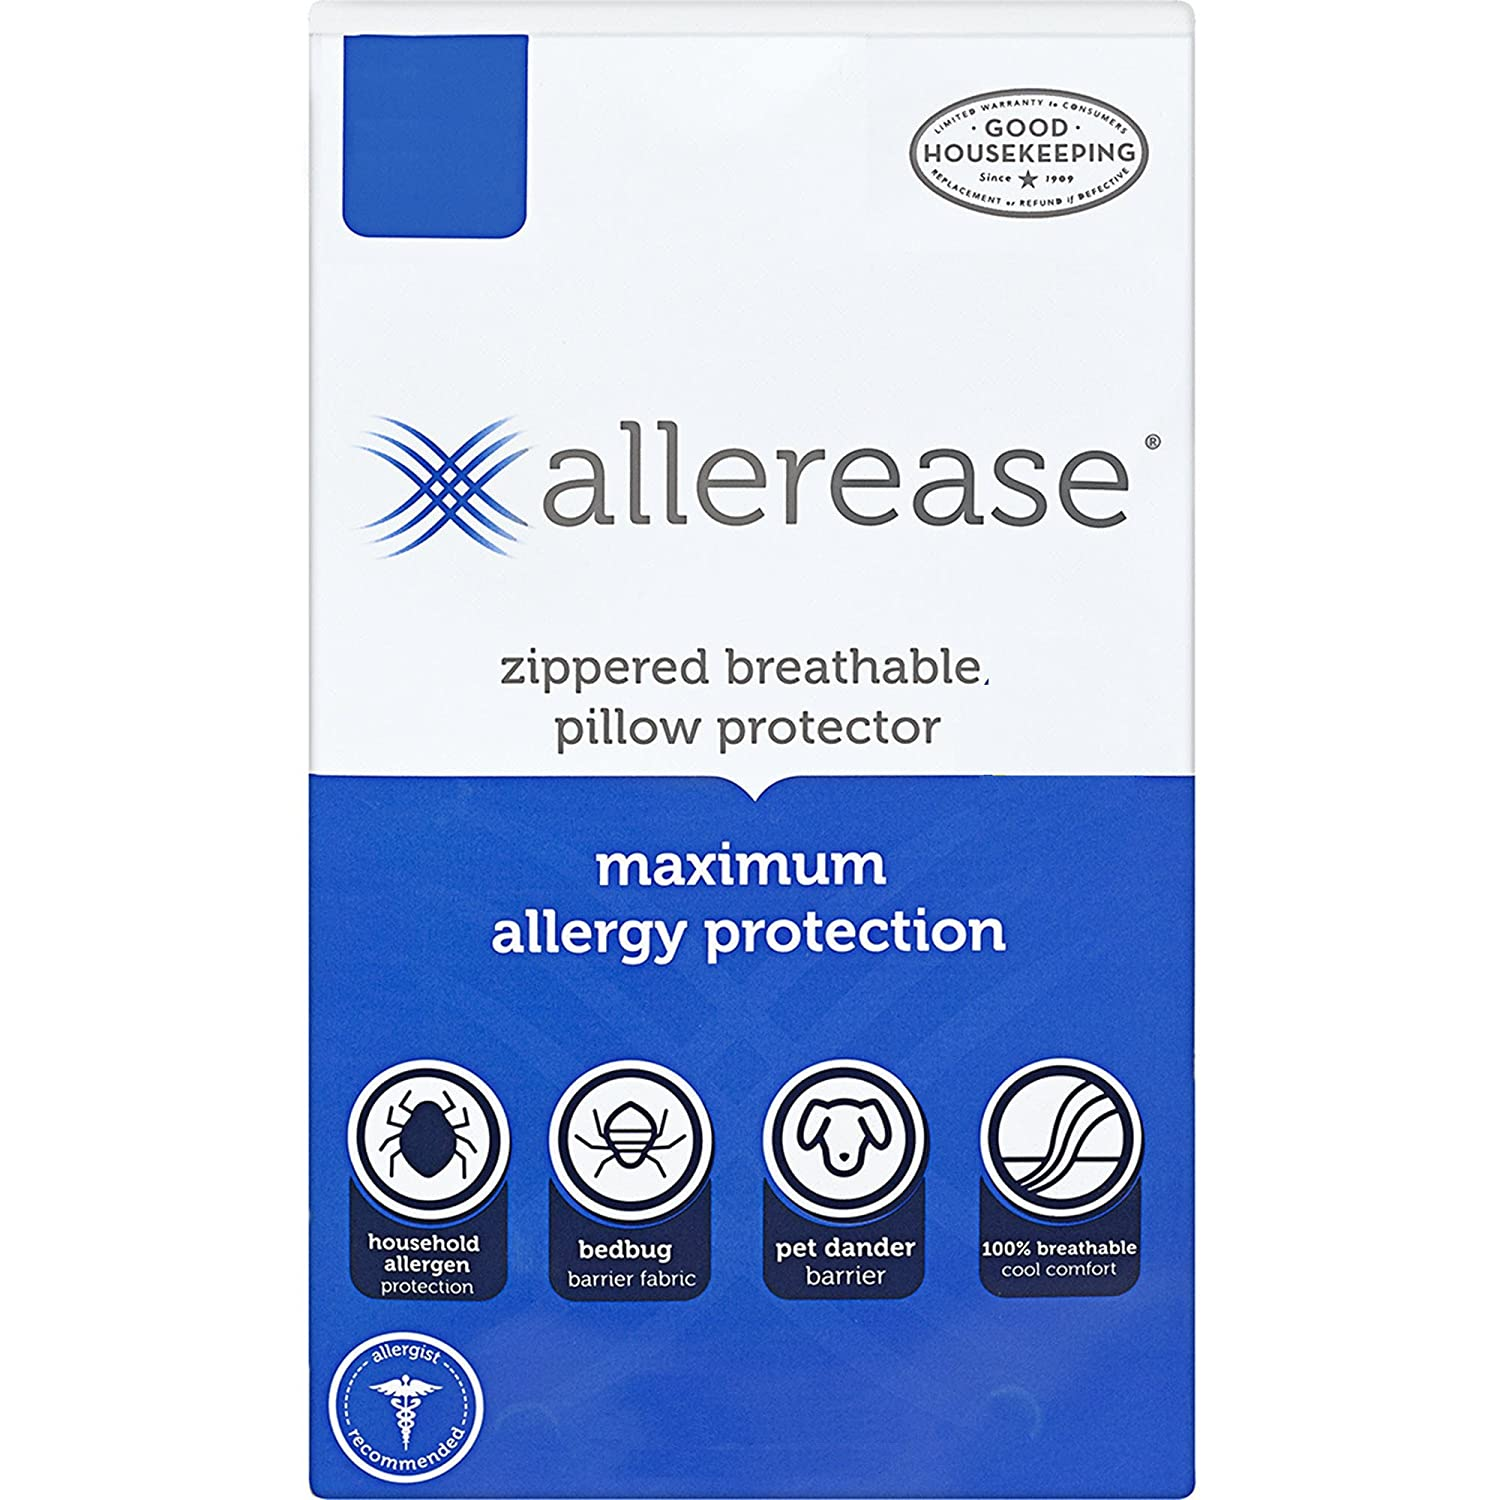 "AllerEase Maximum Allergy Protection Pillow Protectors – Hypoallergenic, Zippered, Allergist Recommended, Prevent Collection of Dust Mites, Bed Bugs and Other Allergens, King Sized, 20"" x 36"""